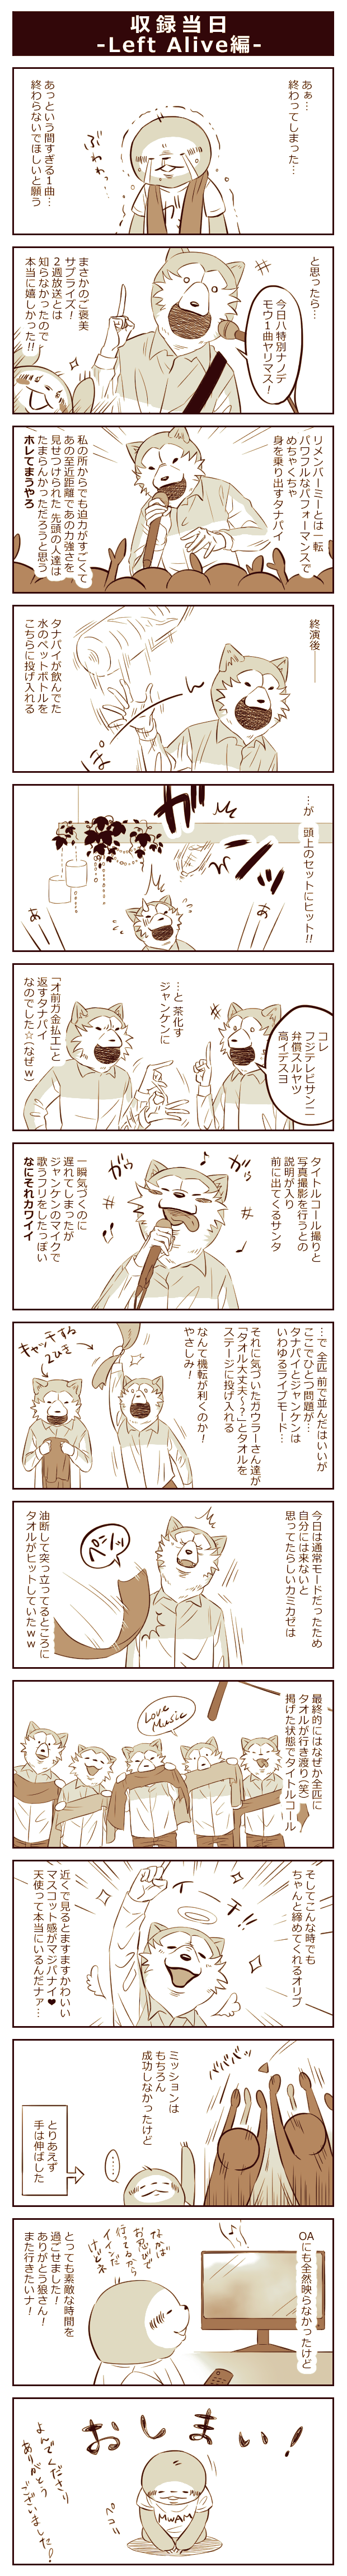 LoveMusic MWAM観覧漫画 #4